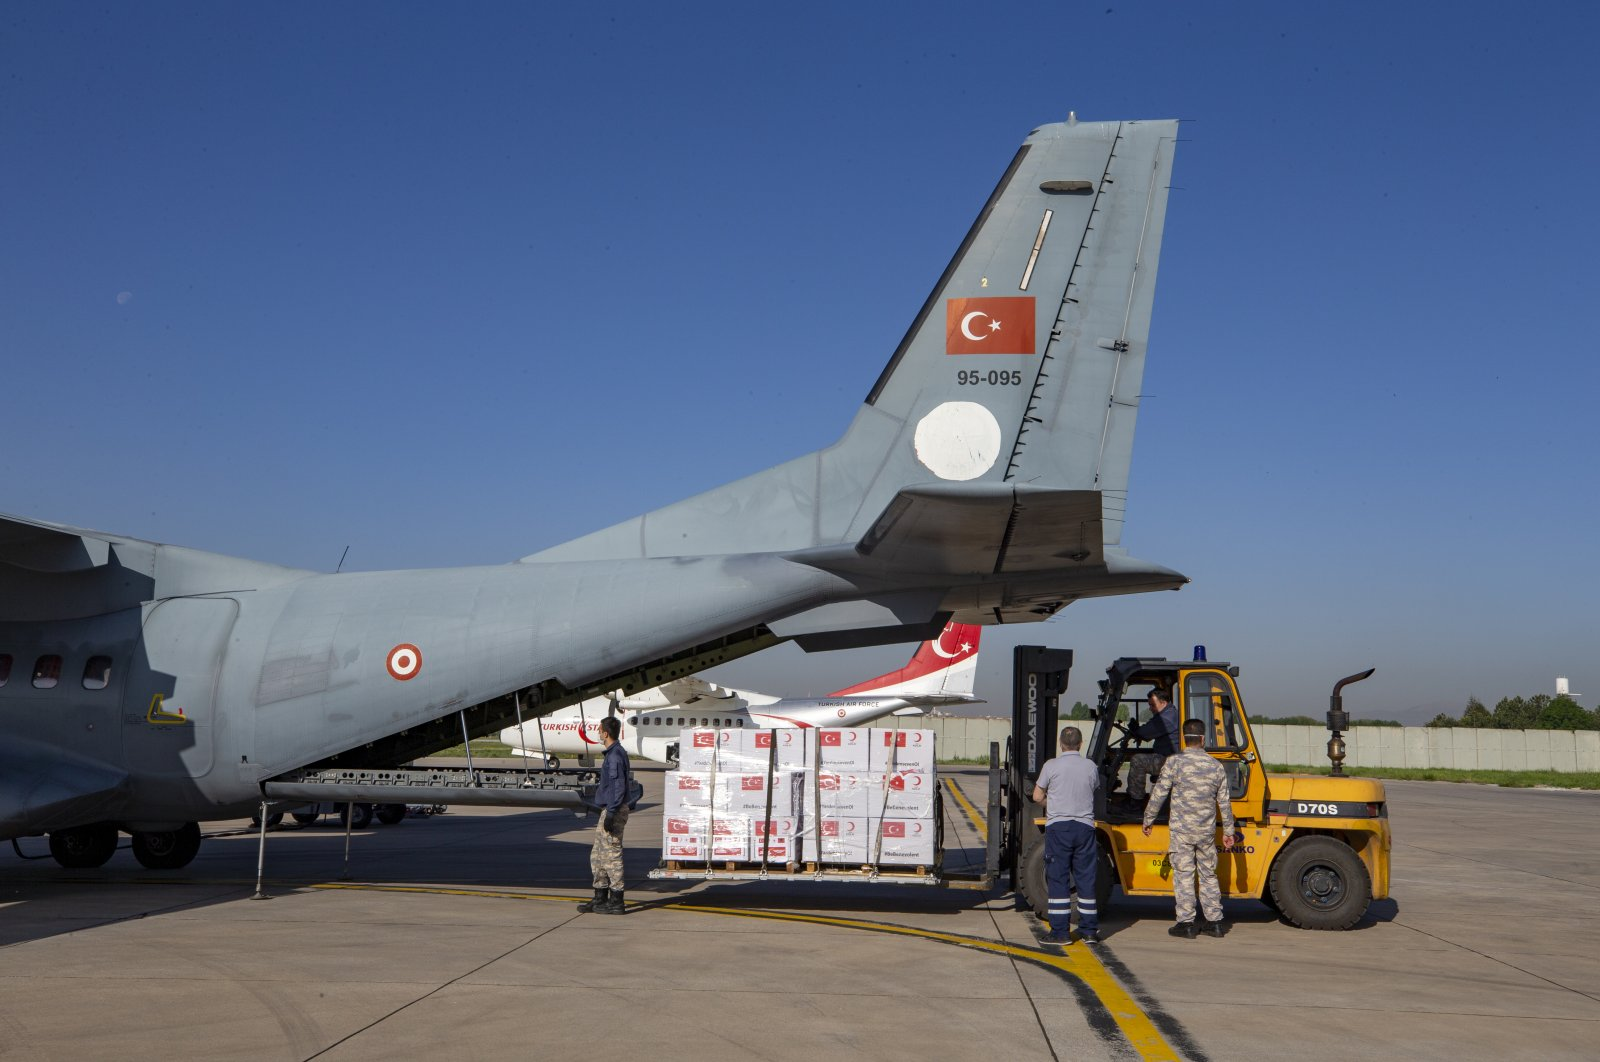 A Turkish military plane carrying medical supplies departed for North Macedonia and Albania to support those countries' fight against COVID-19, Etimesgut, Ankara, Turkey, May 12, 2020. (AA Photo)